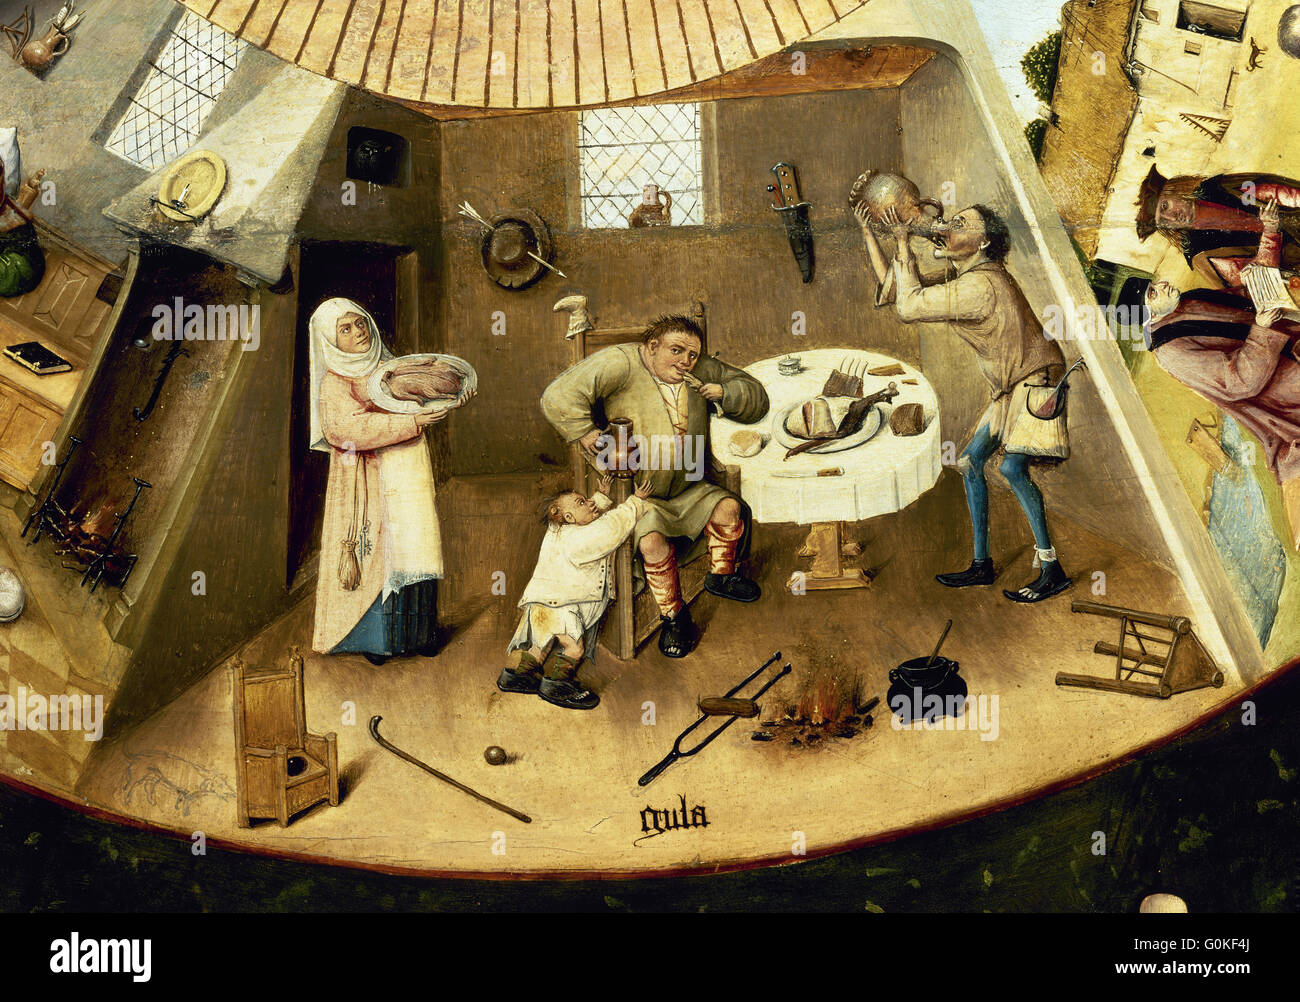 Hieronymus Bosch (c.1450-1516). Dutch painter. Table of the Seven Deadly Sins. Detail of the Gluttony. Prado Museum. - Stock Image